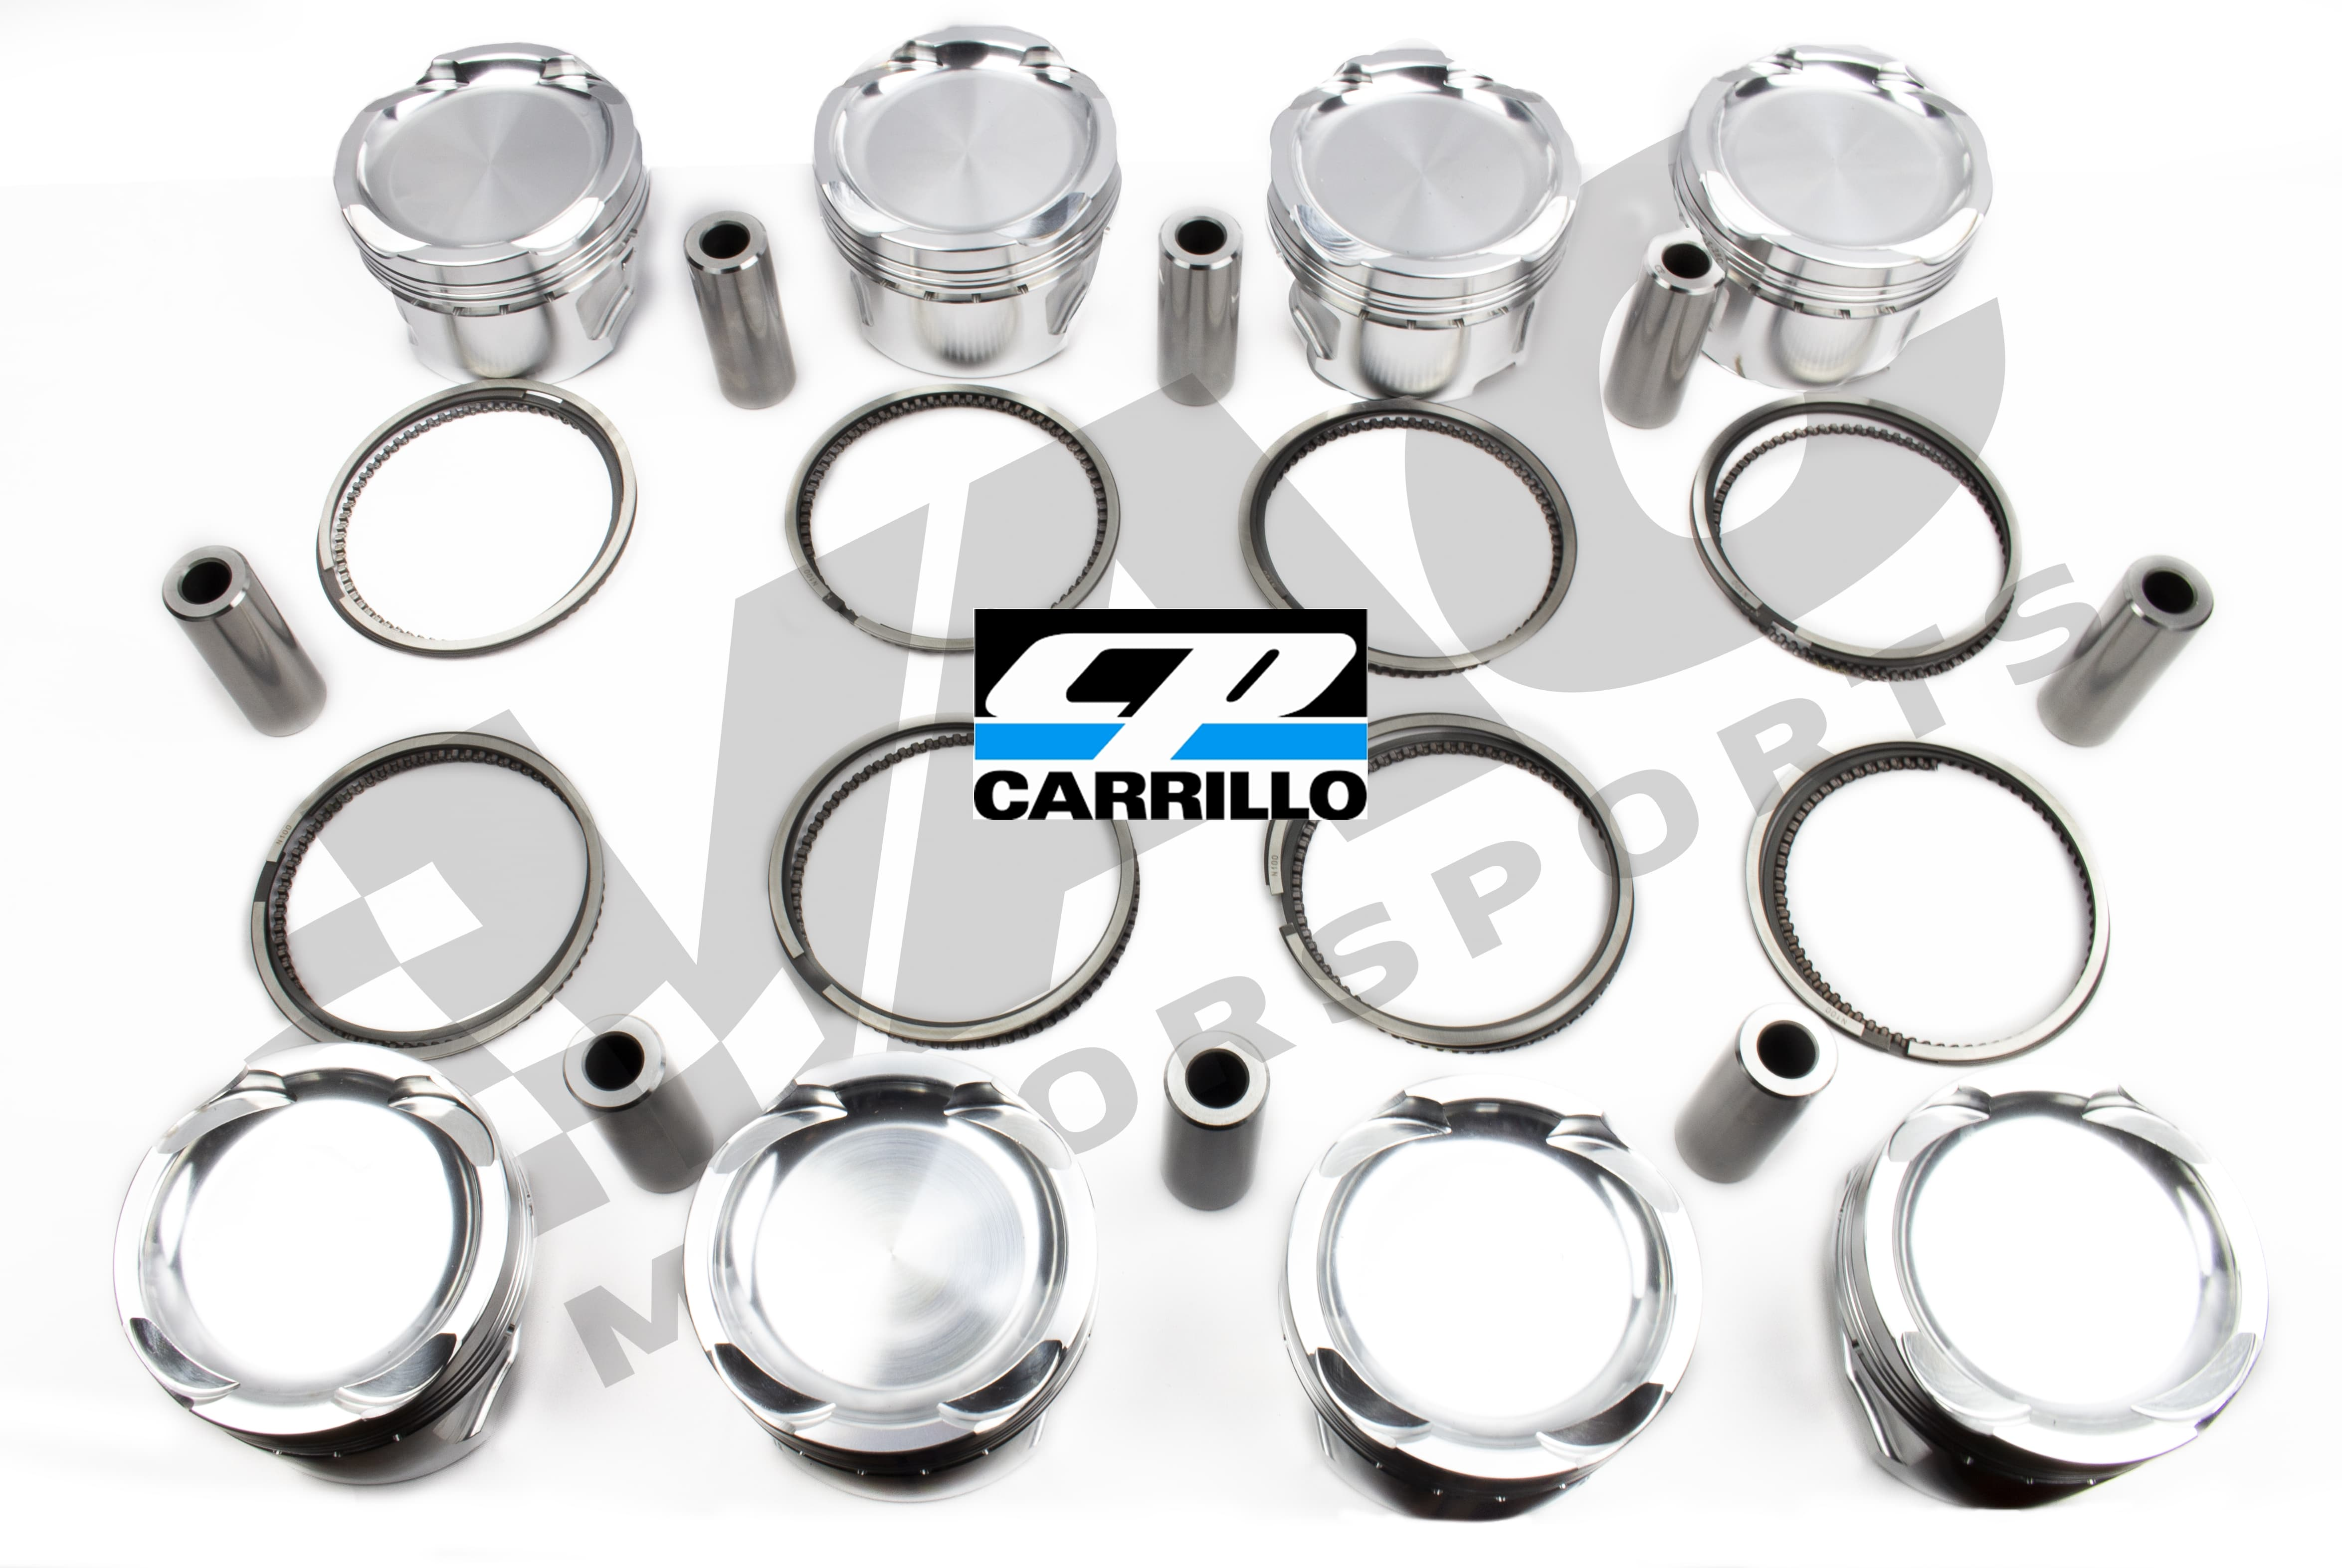 CP-Carrillo Forged Piston Set (Sleeved BMW S65) THUMBNAIL